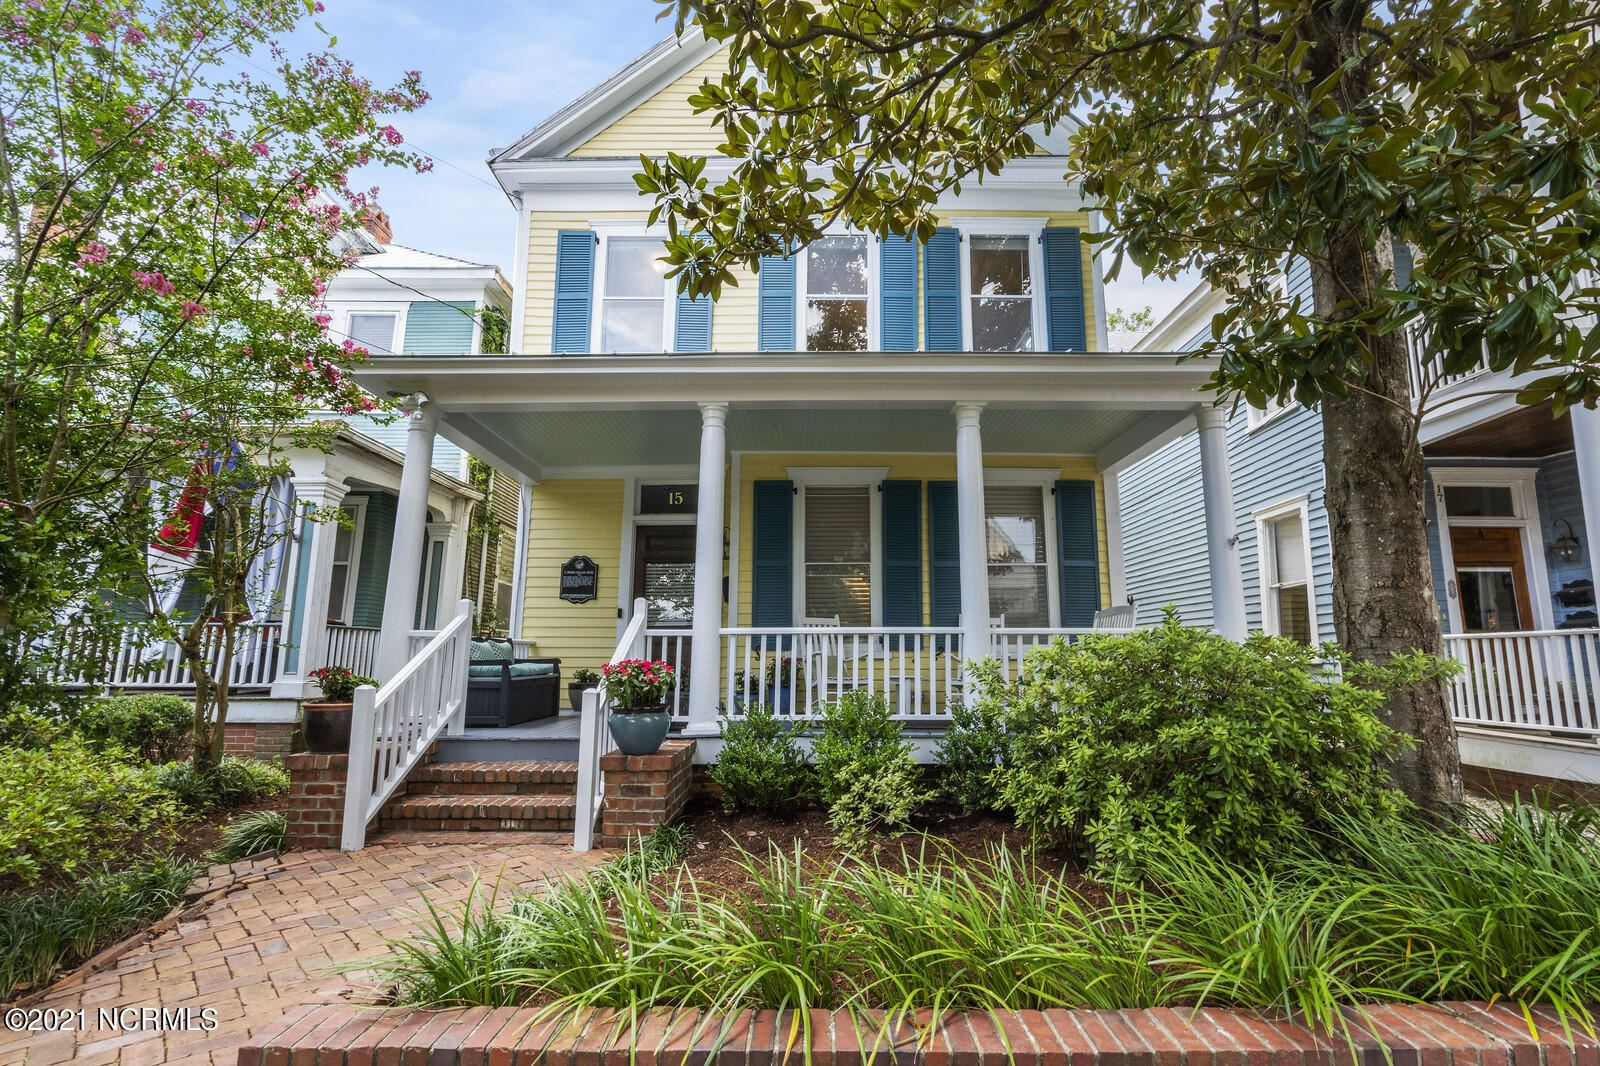 Photo for 15 S 4th Street, Wilmington, NC 28401 (MLS # 100280622)